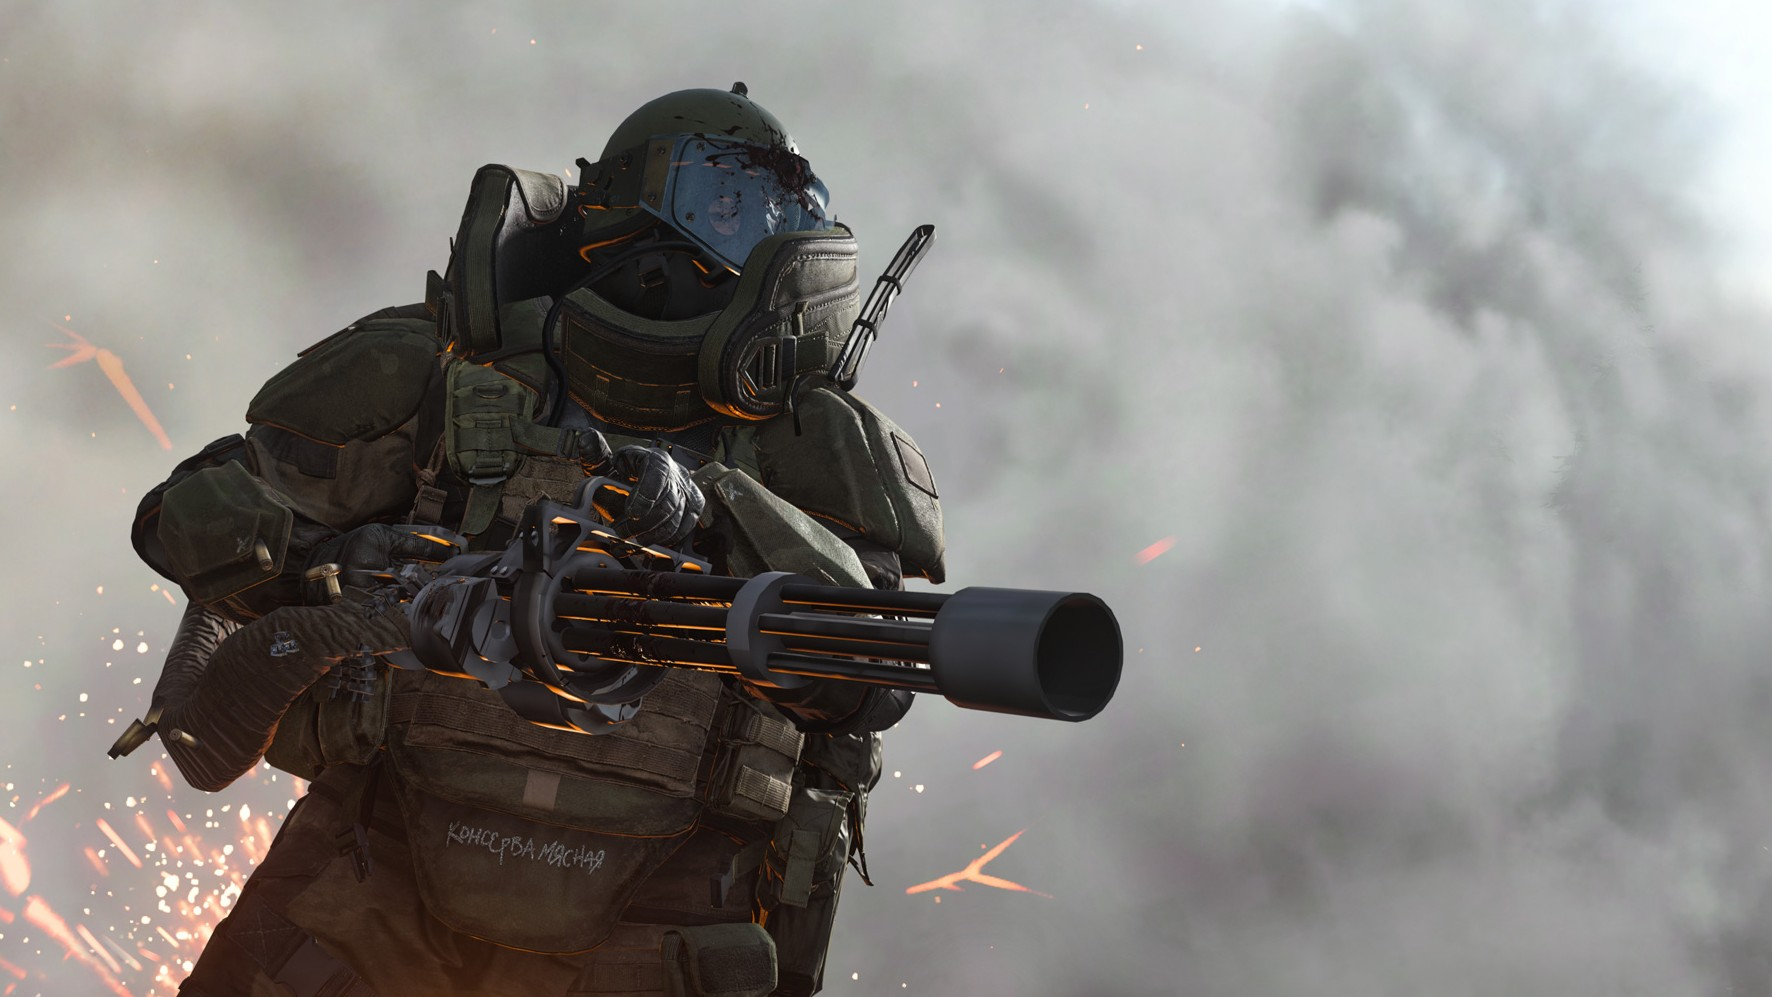 Call of Duty: Warzone's next map leaks, is quickly struck down by Activision